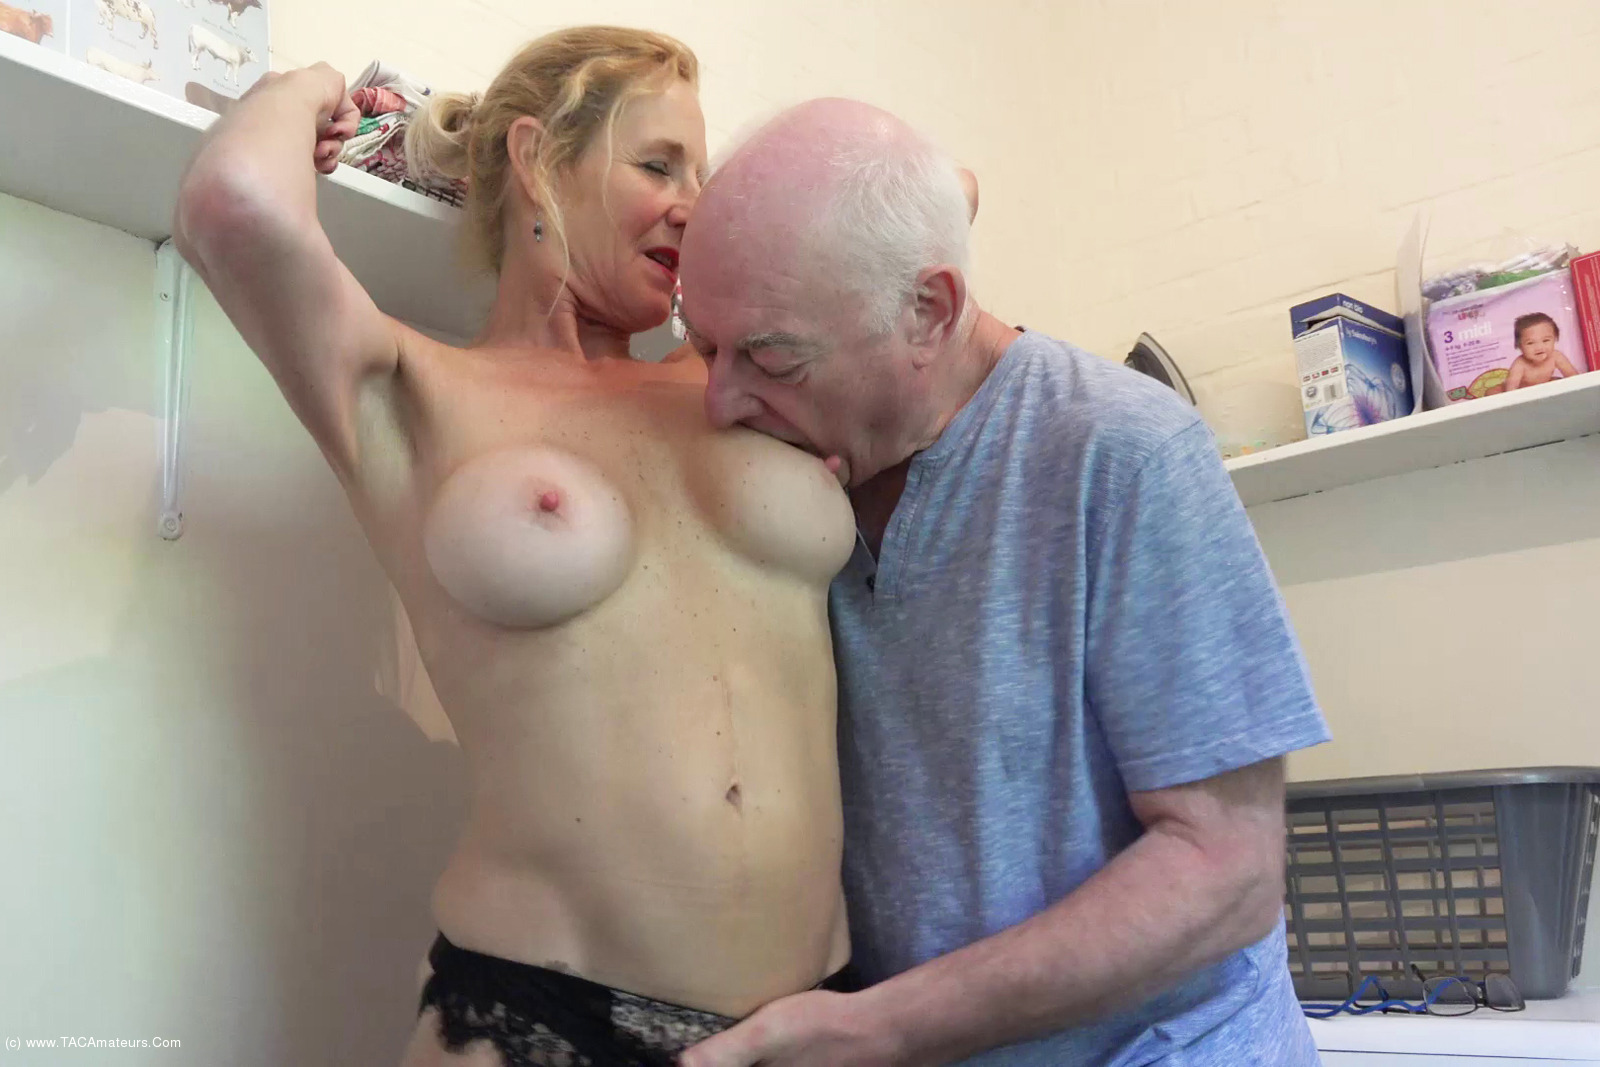 MollyMILF - Wet T-Shirt Pt2 scene 1